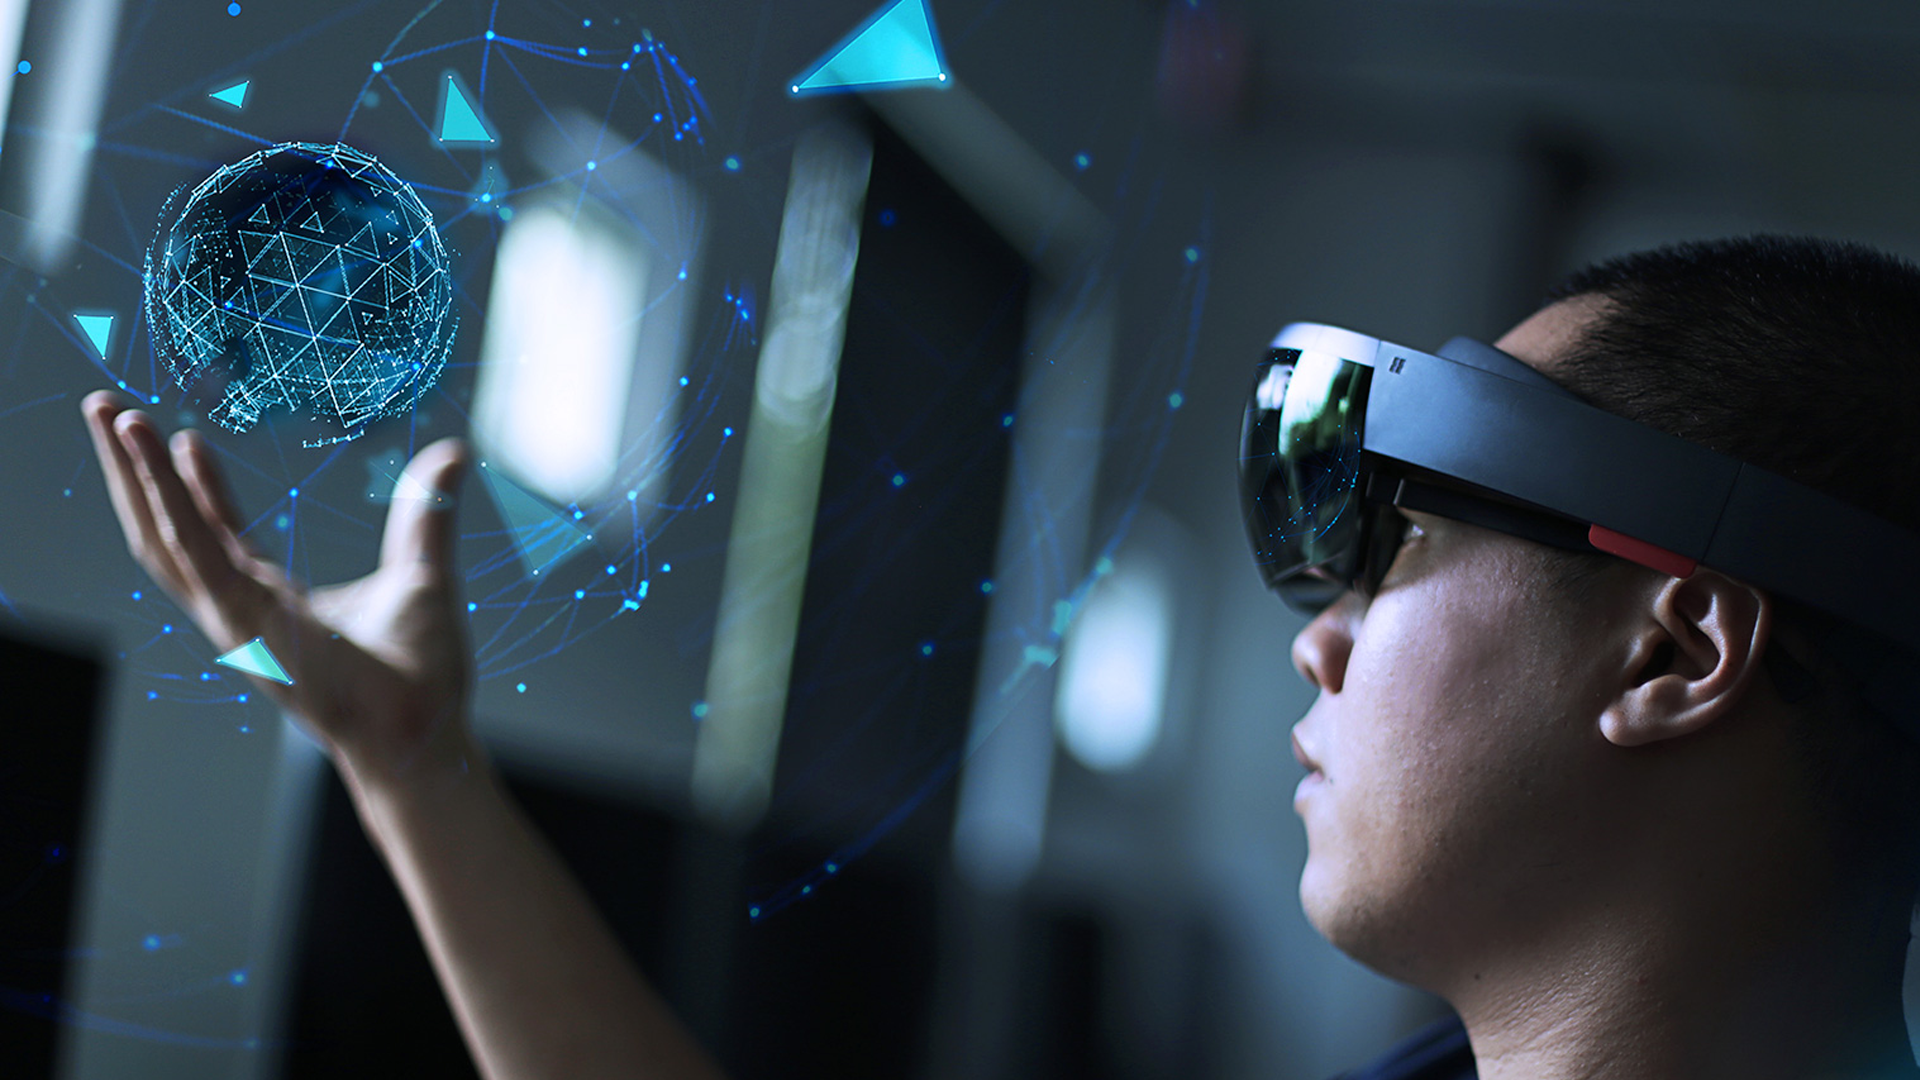 VR Goggles - as a gateway to VR adoption